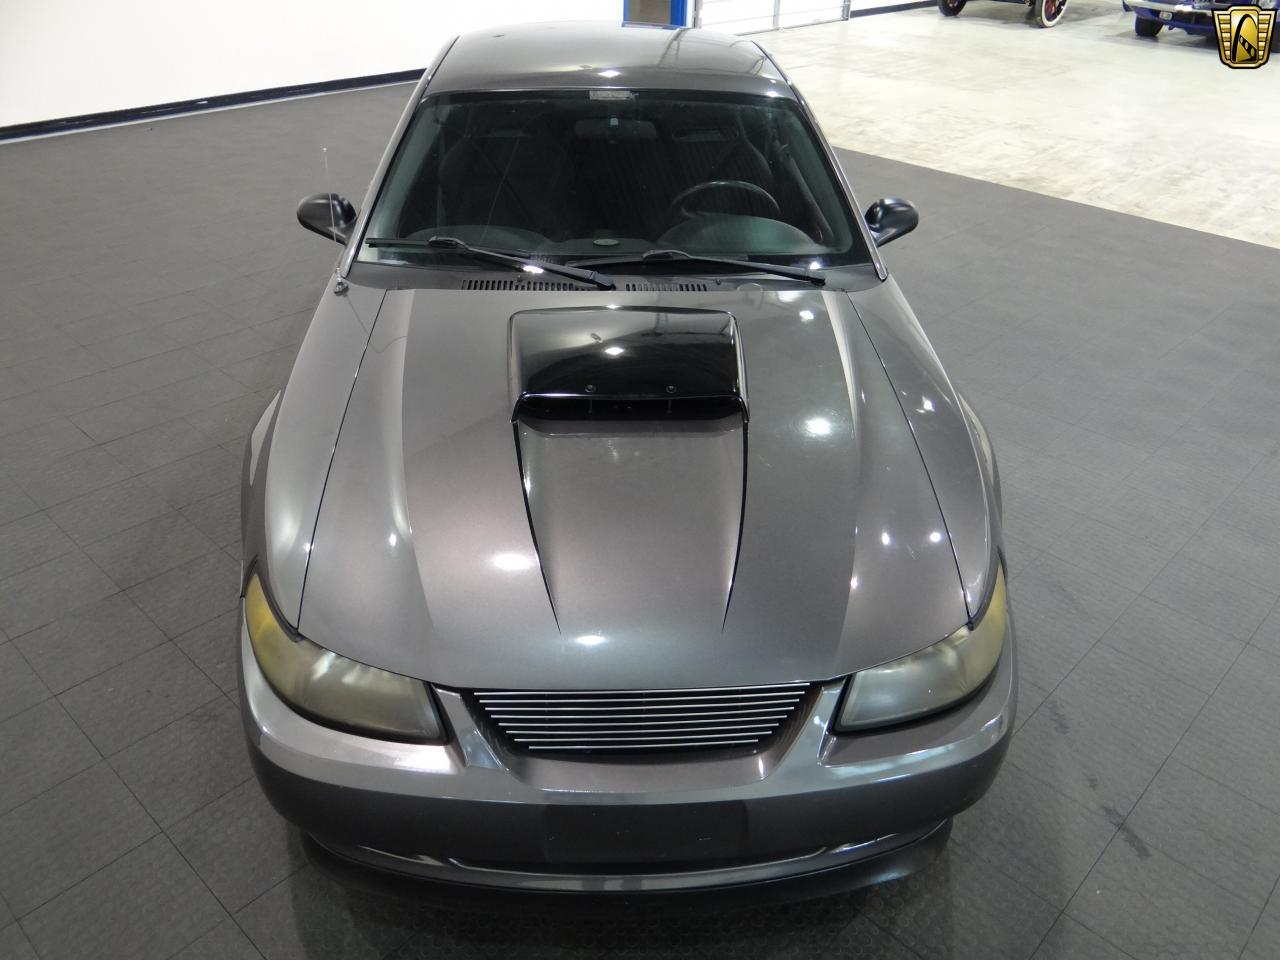 Large Picture of '03 Mustang located in Indiana - $11,995.00 Offered by Gateway Classic Cars - Indianapolis - KE78